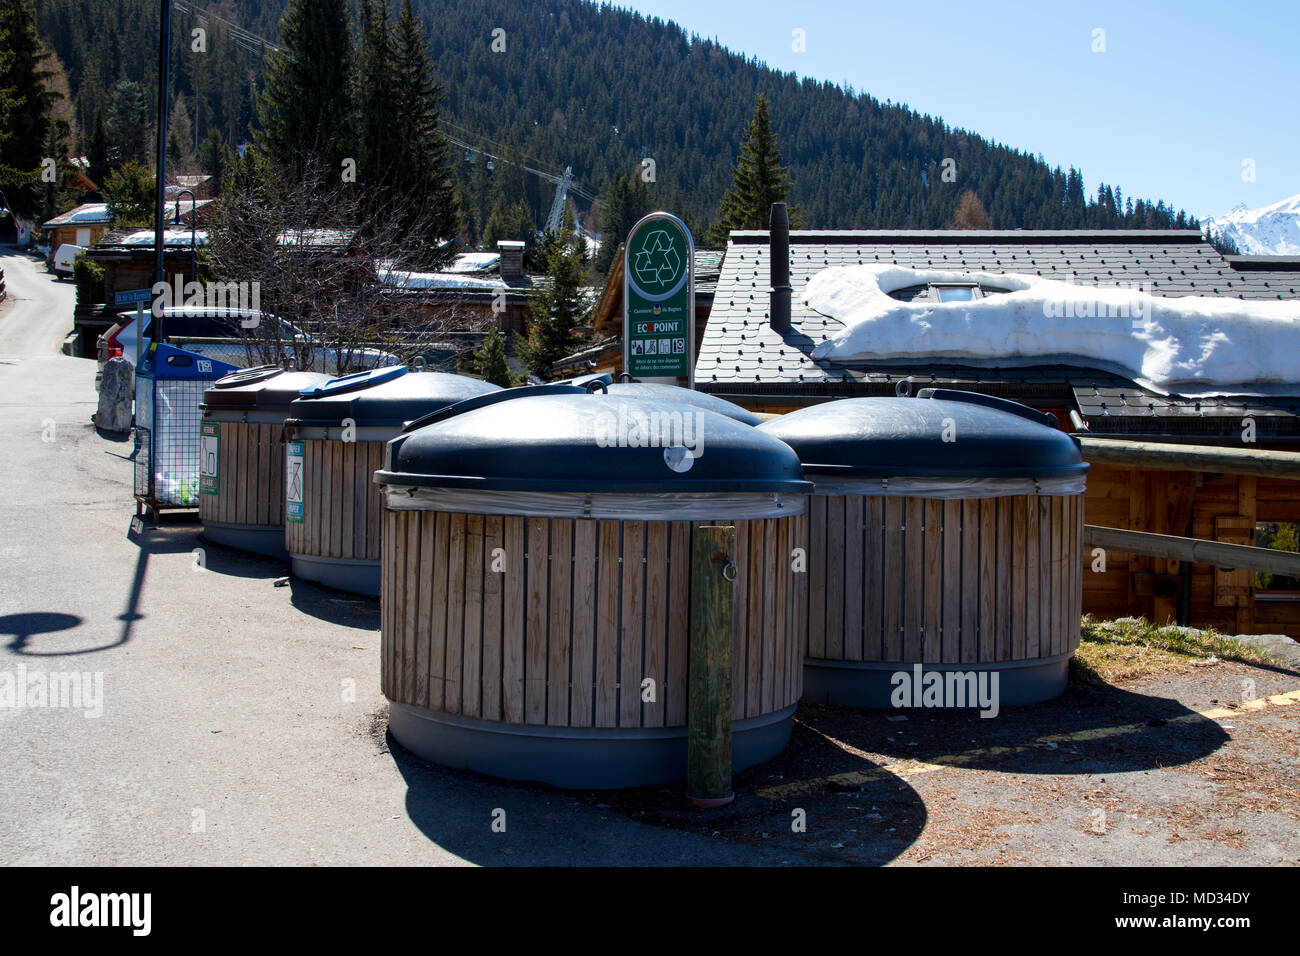 Public Wood trash can bin in verbier switzerland - Stock Image